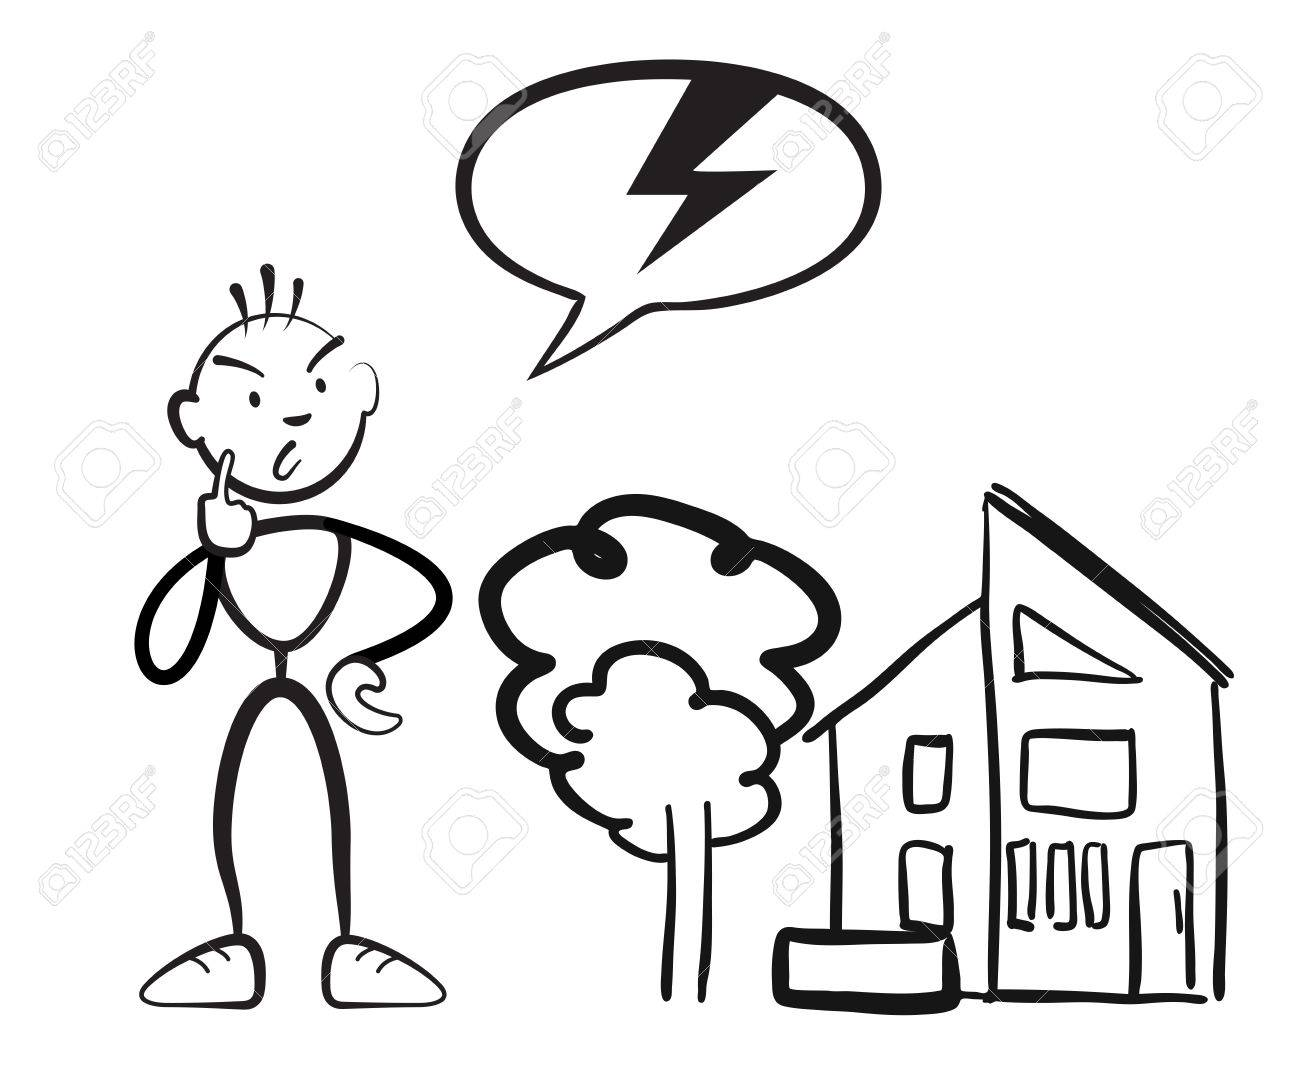 1300x1076 Stick Figure Man Reports Household Damage, Stickman Vector Drawing